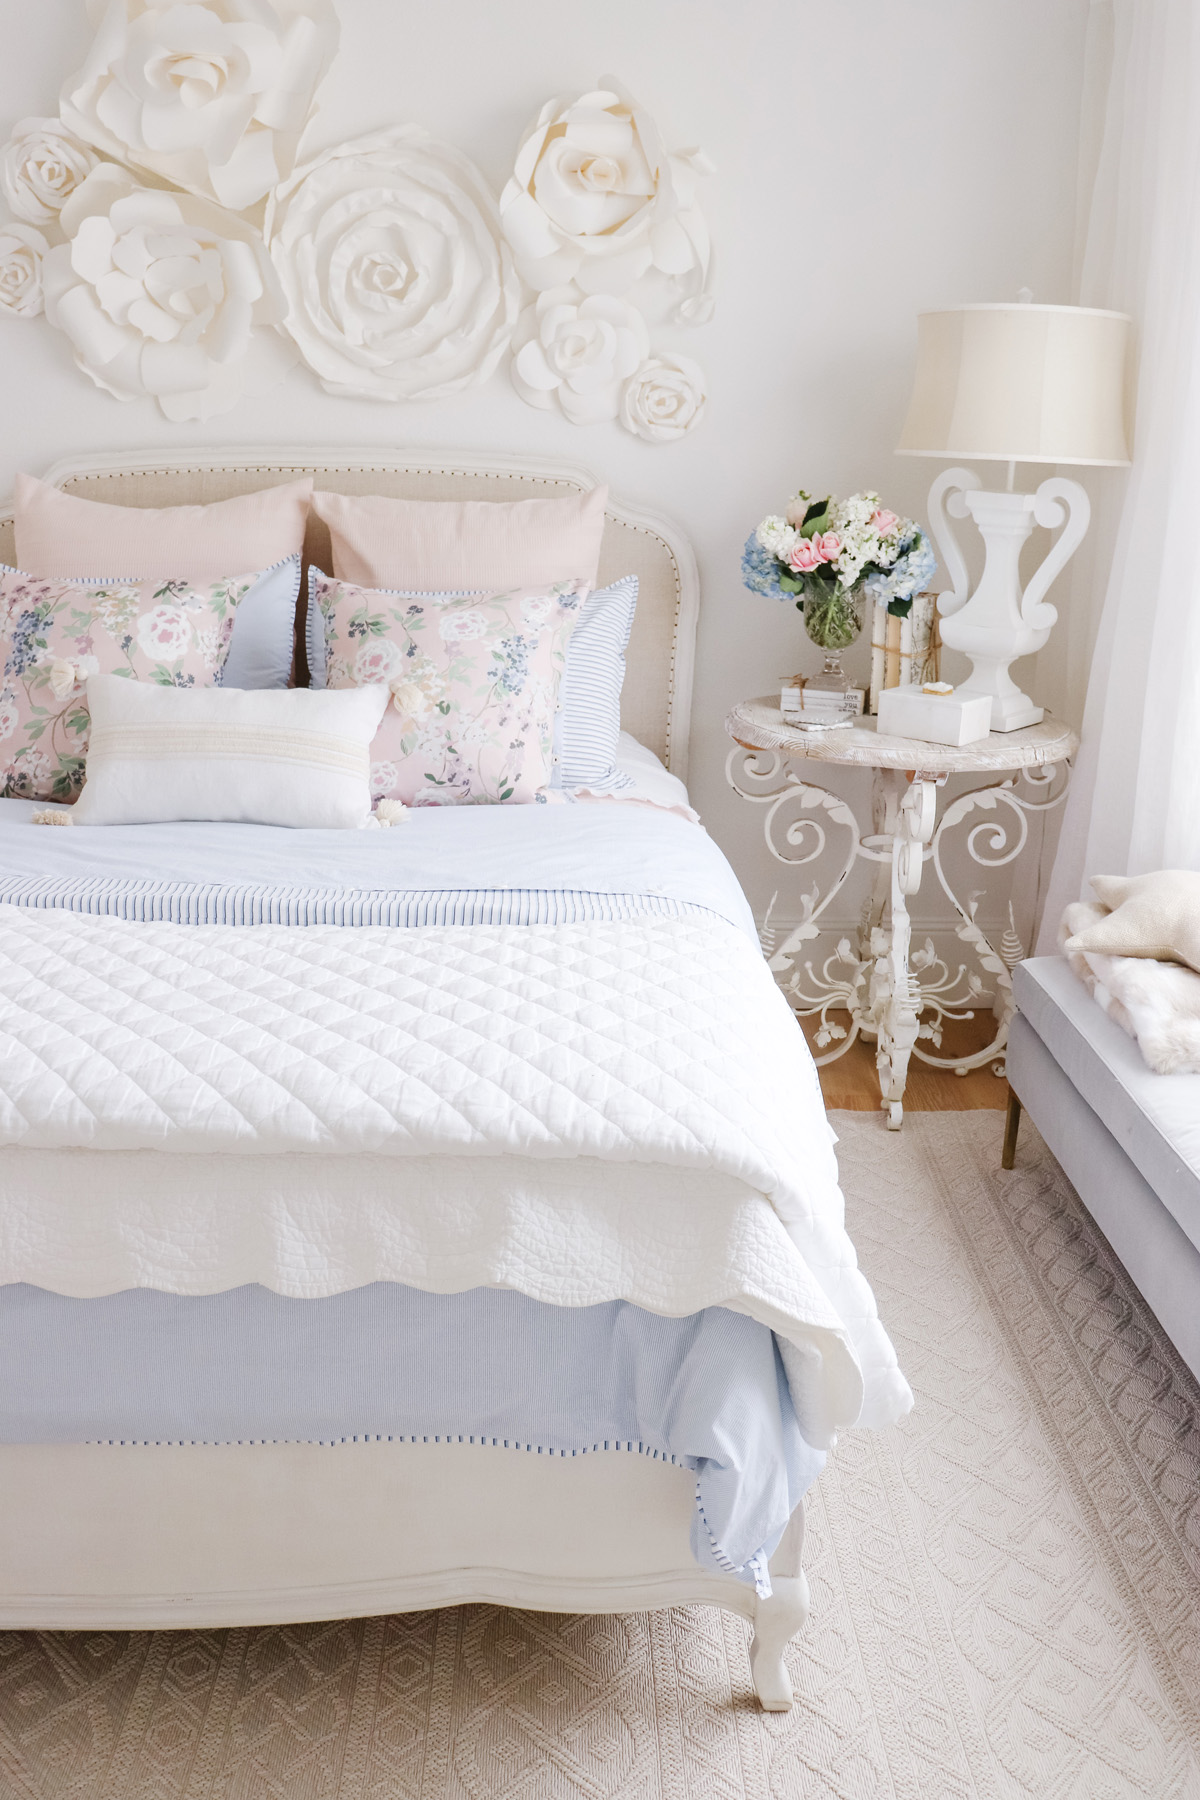 Spring Bedroom Refresh | Kristy Wicks